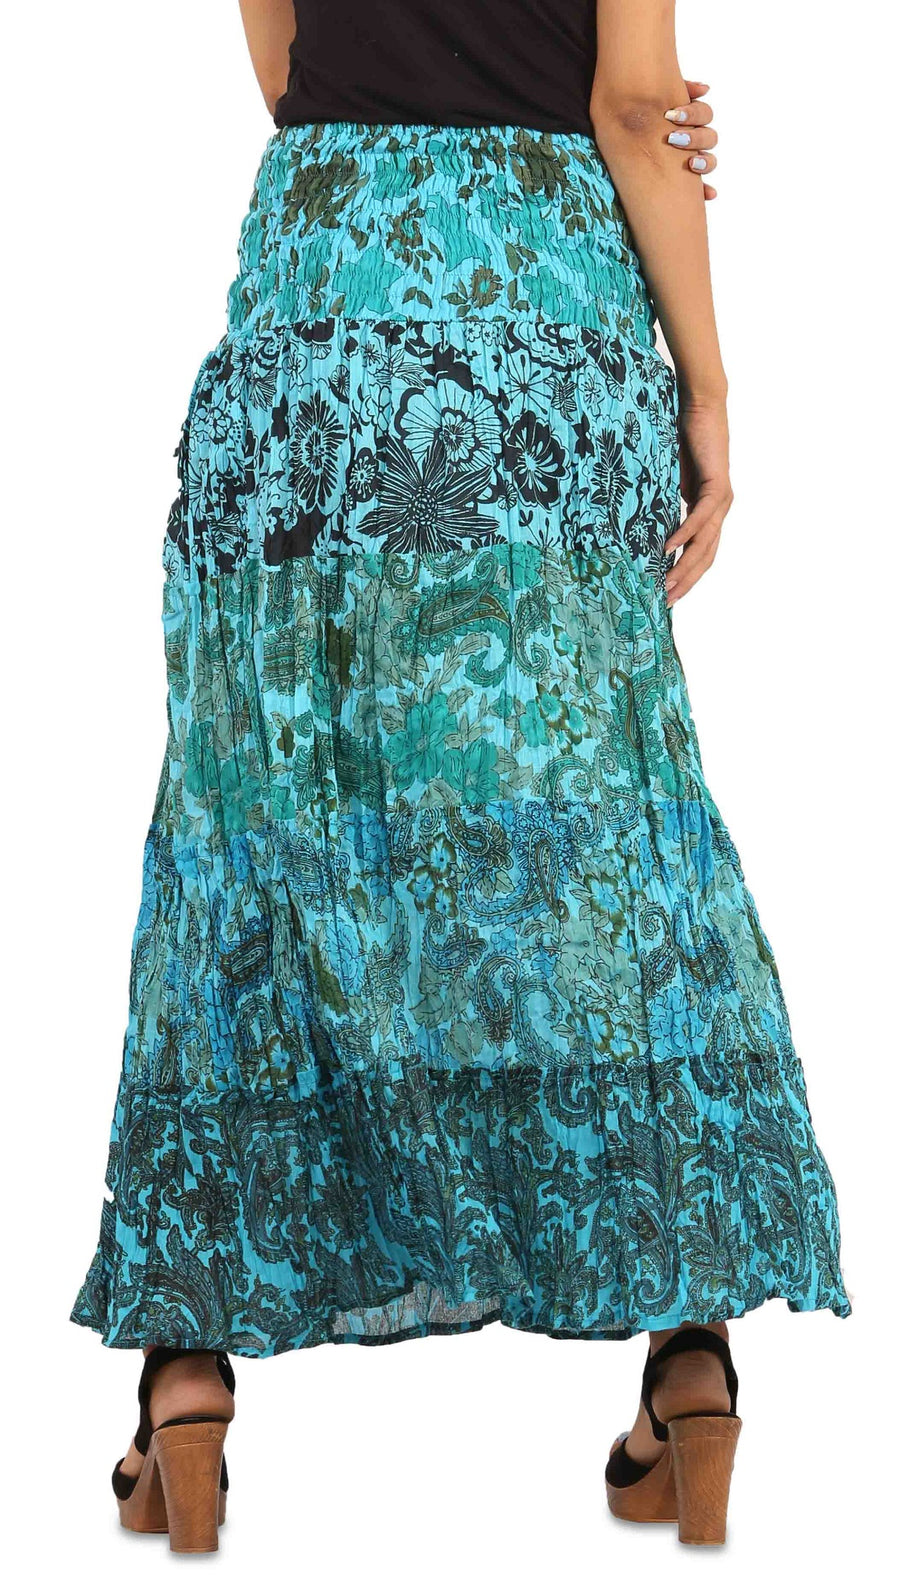 Blue Skirt, Floral Skirt, Skirts For Women, High Waisted Skirt, Long Maxi Skirt, Skirts Online, Summer Skirts, Long Skirt, Cute Skirts, Cotton Skirts,Full Skirt, Long Summer Skirts,  Buy Skirts Online